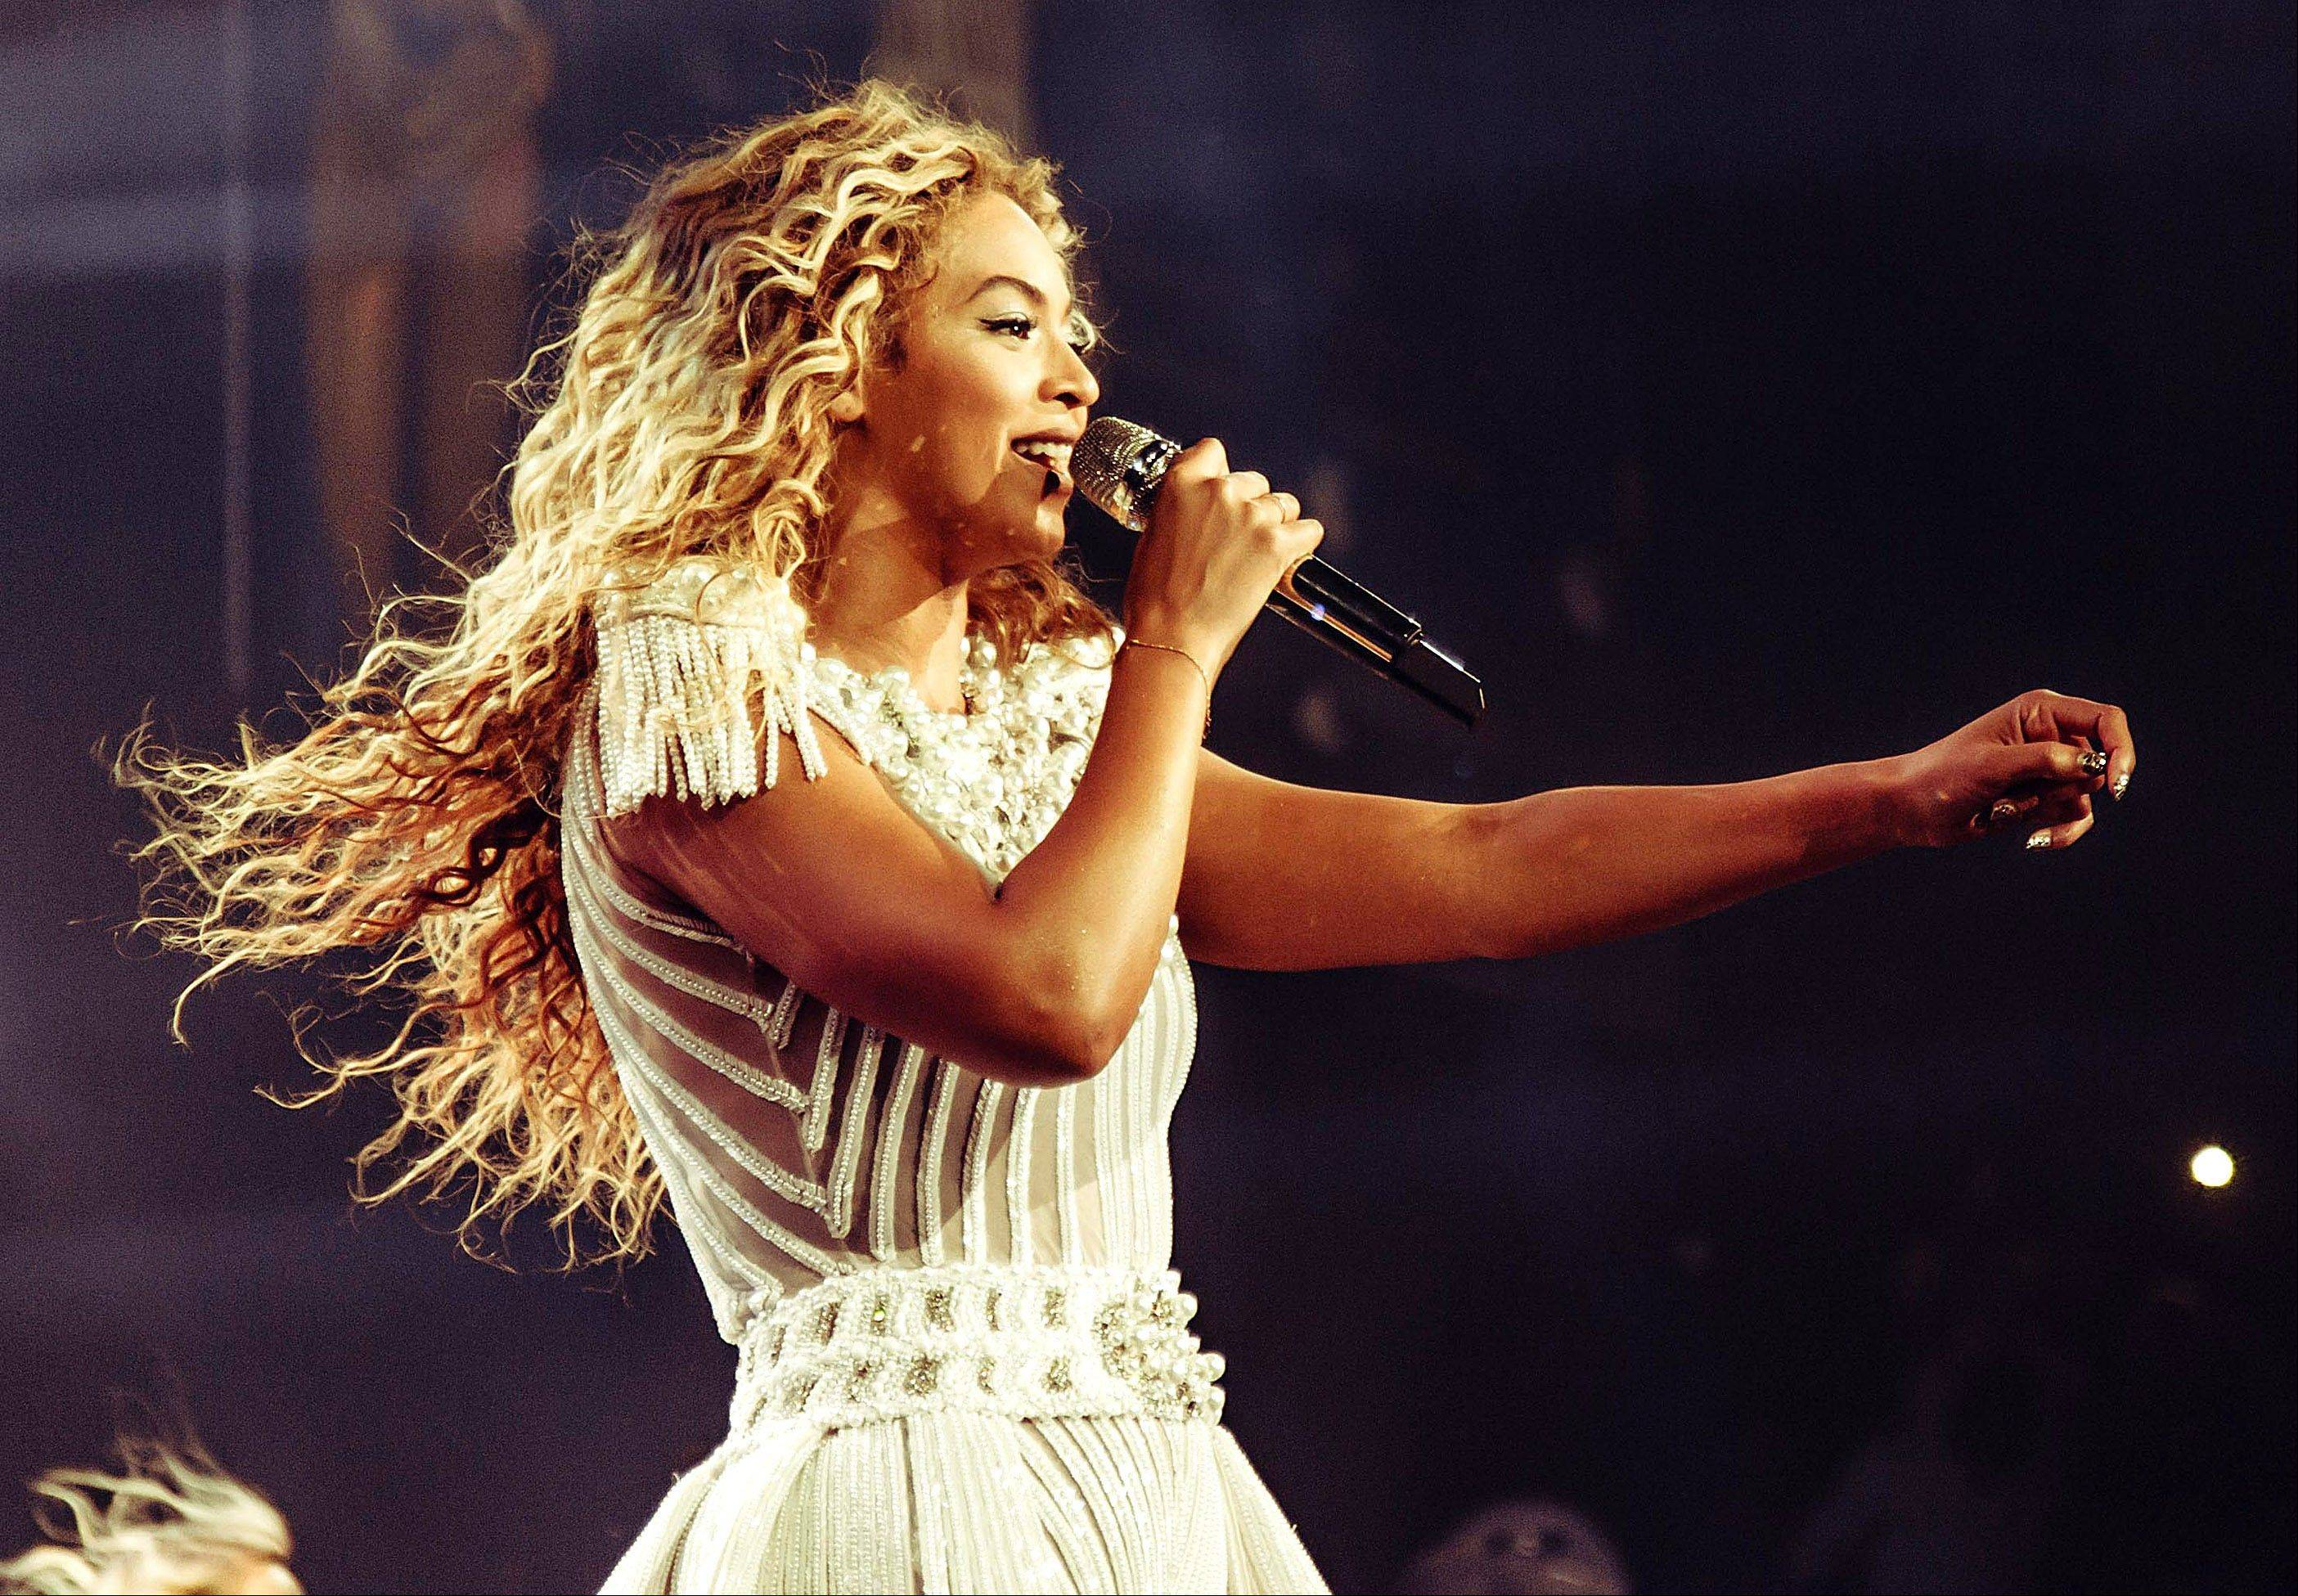 "Beyonce called for a moment of silence for Trayvon Martin during a concert just hours after George Zimmerman was found not guilty by a Florida jury on Saturday. After asking the crowd to be silent a moment, she sang the chorus of ""I Will Always Love You,"" a song written by country music star Dolly Parton and brought to a global audience by the late Whitney Houston."